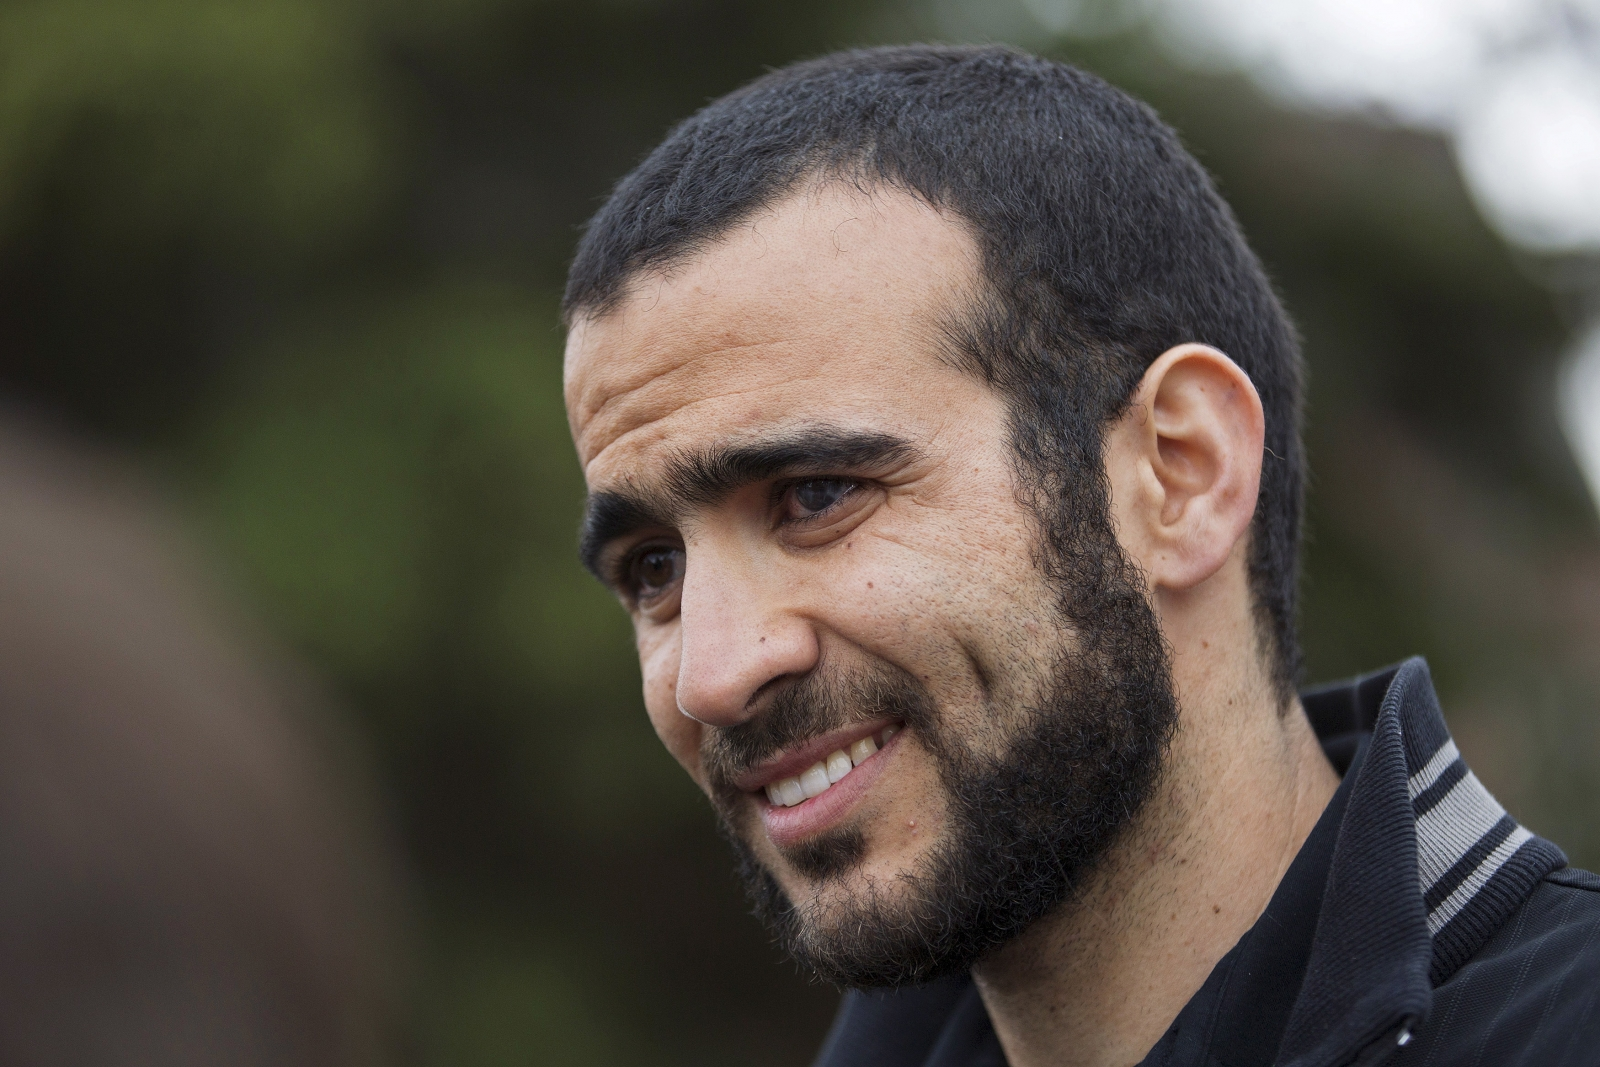 Omar Khadr to be offered apology, at least $10 million from Canada